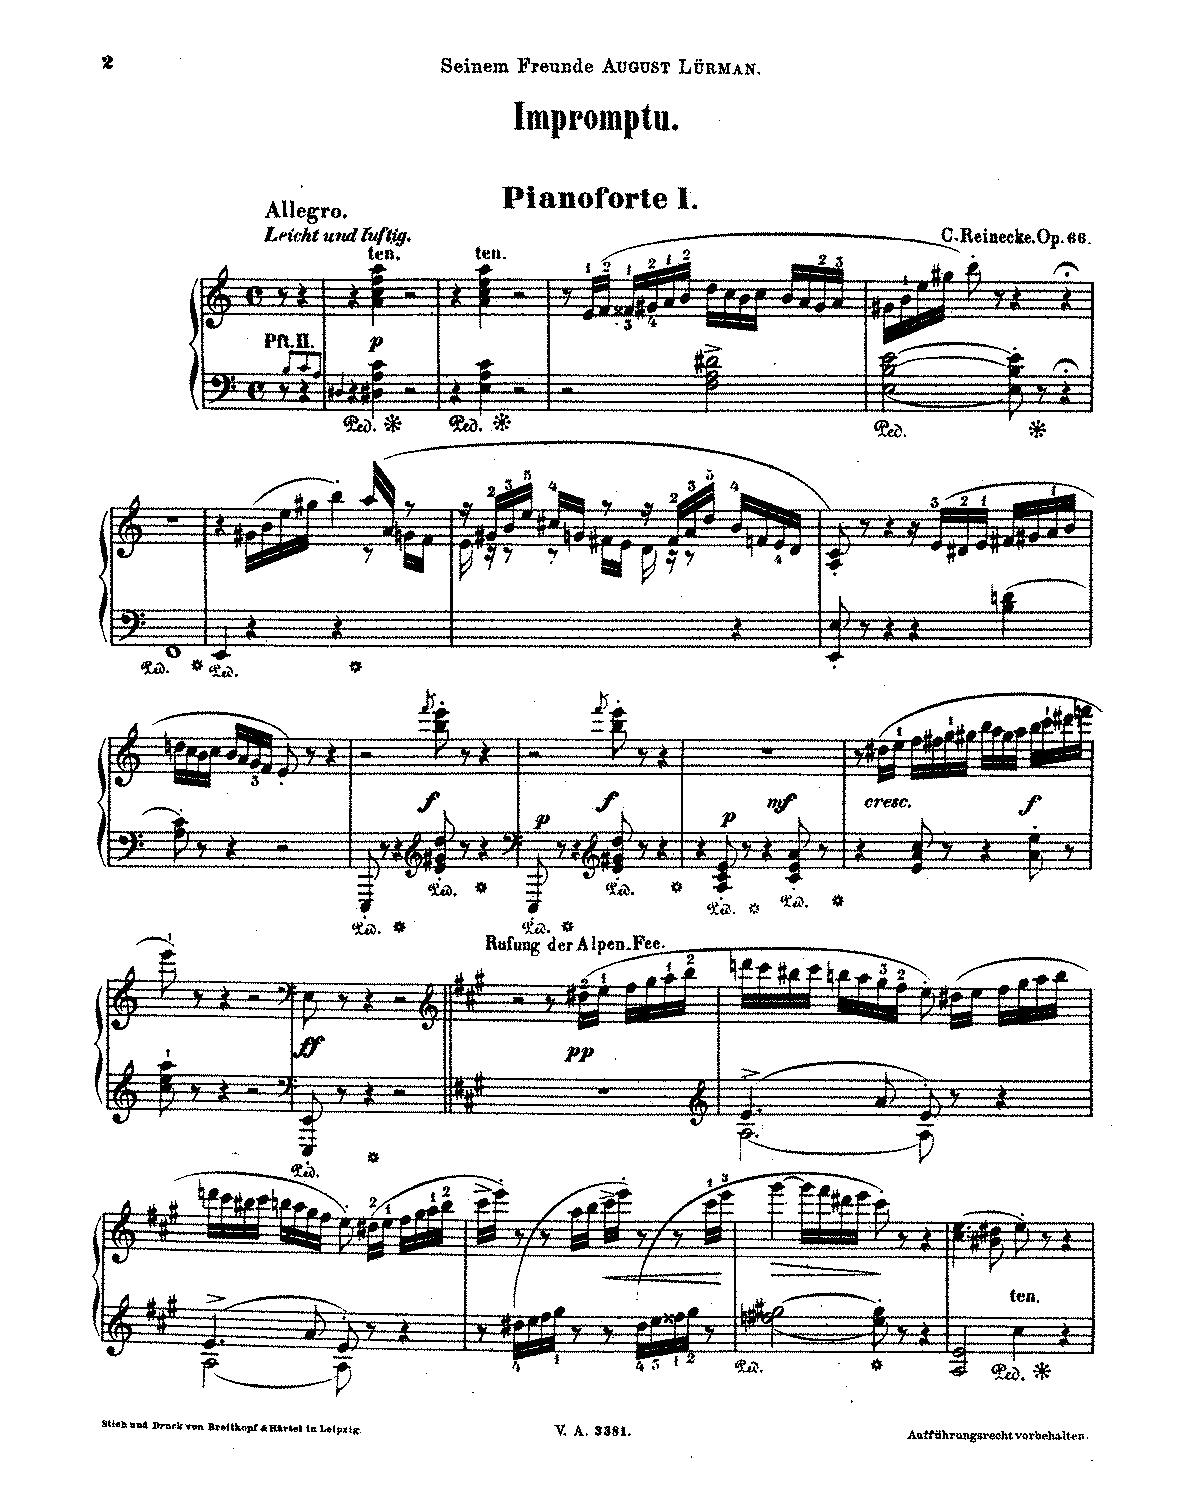 Reinecke-op066-Impromptu-two-pianos.pdf